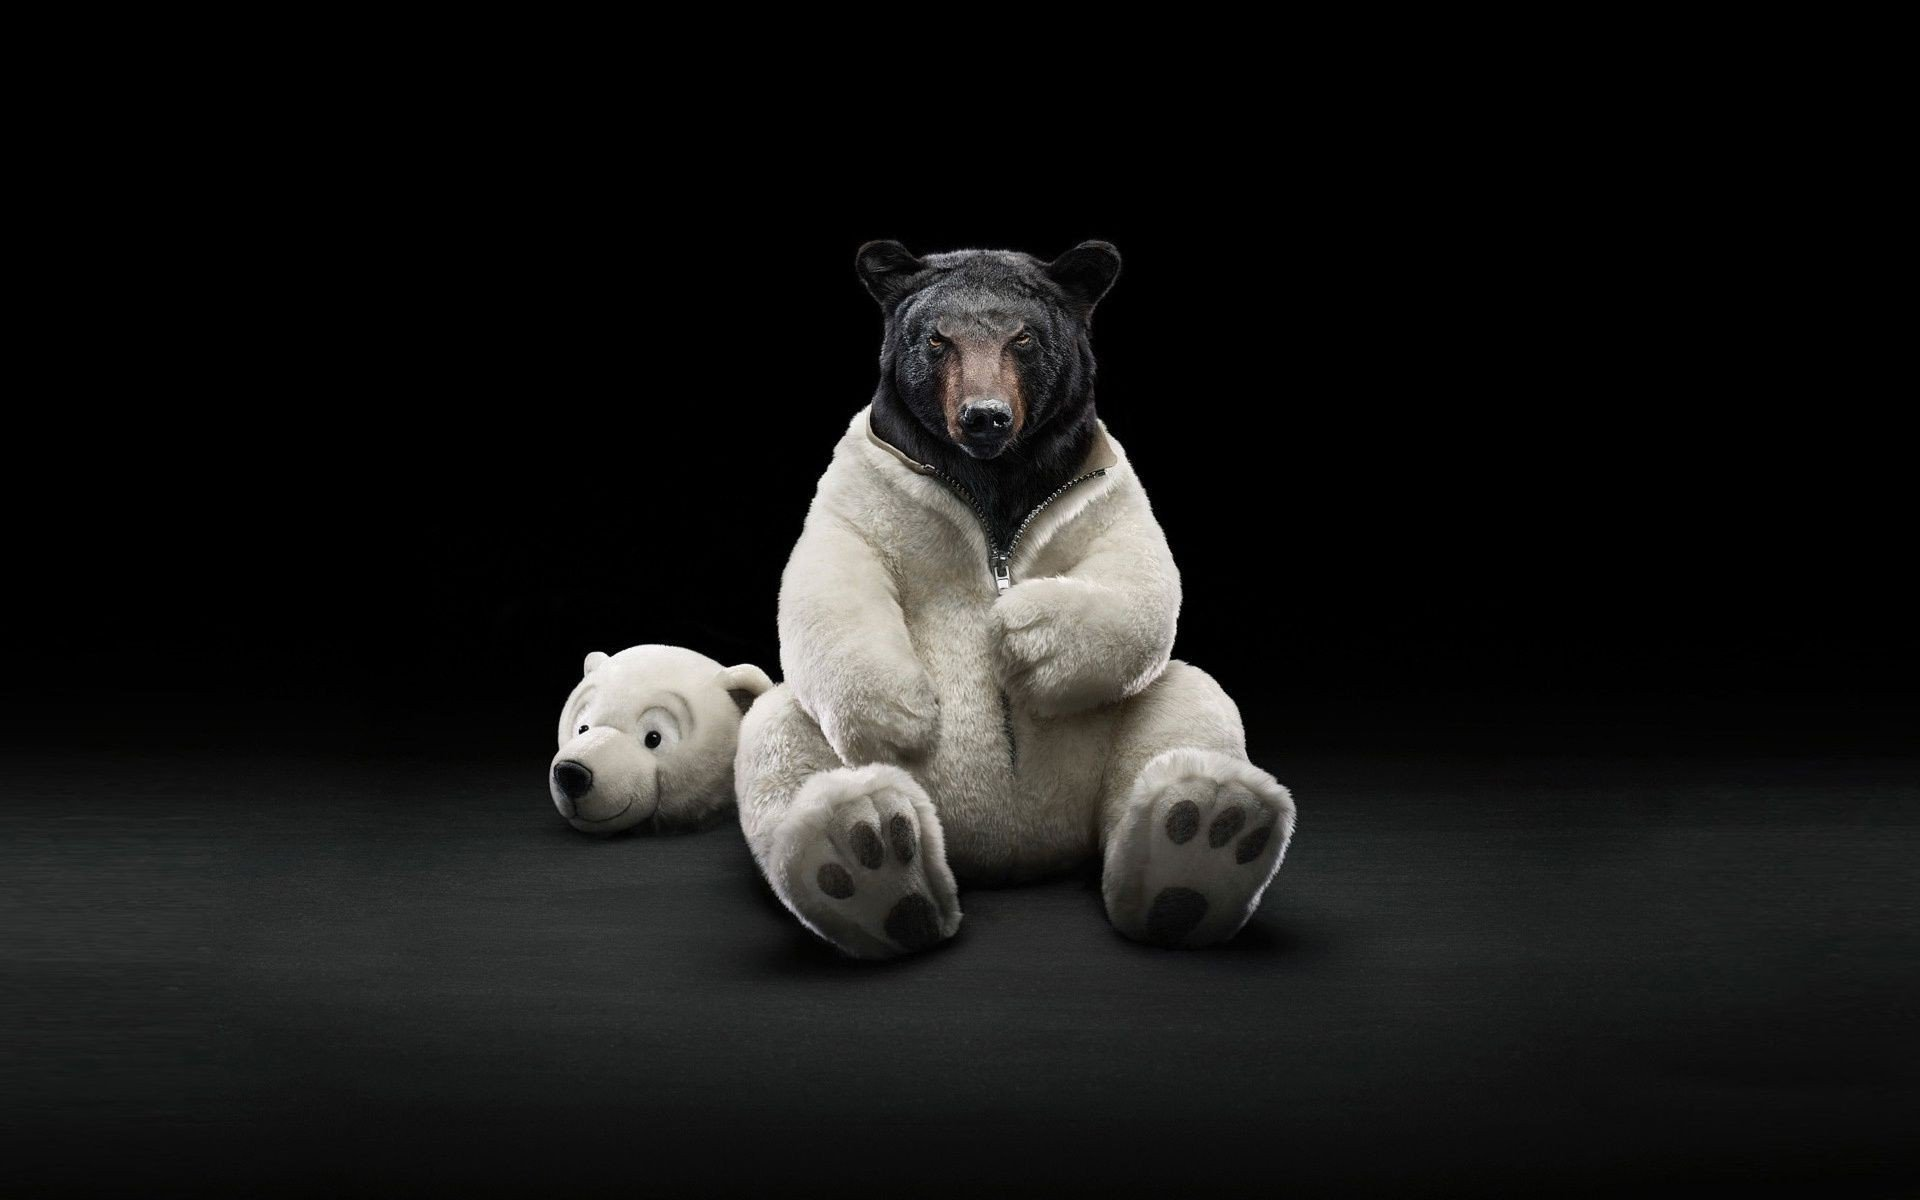 costume-bears-polar-bears-black-bear-wallpaper-1